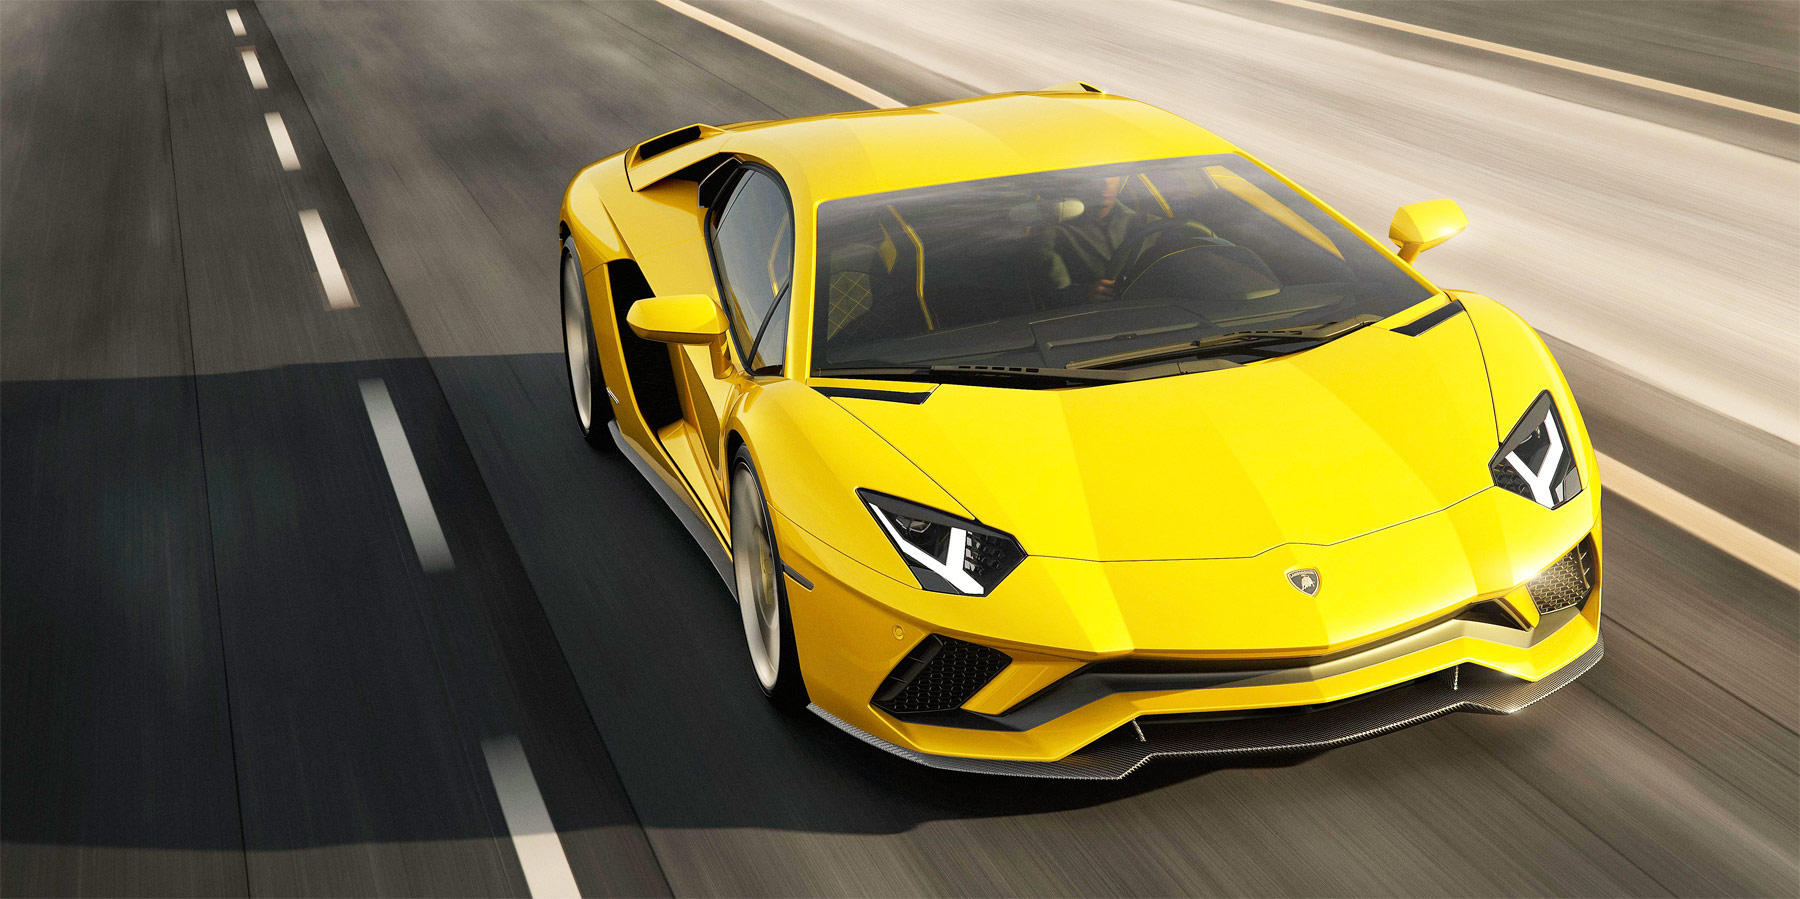 Lamborghini Introduces Aventador S The Brand's New V12 flagship